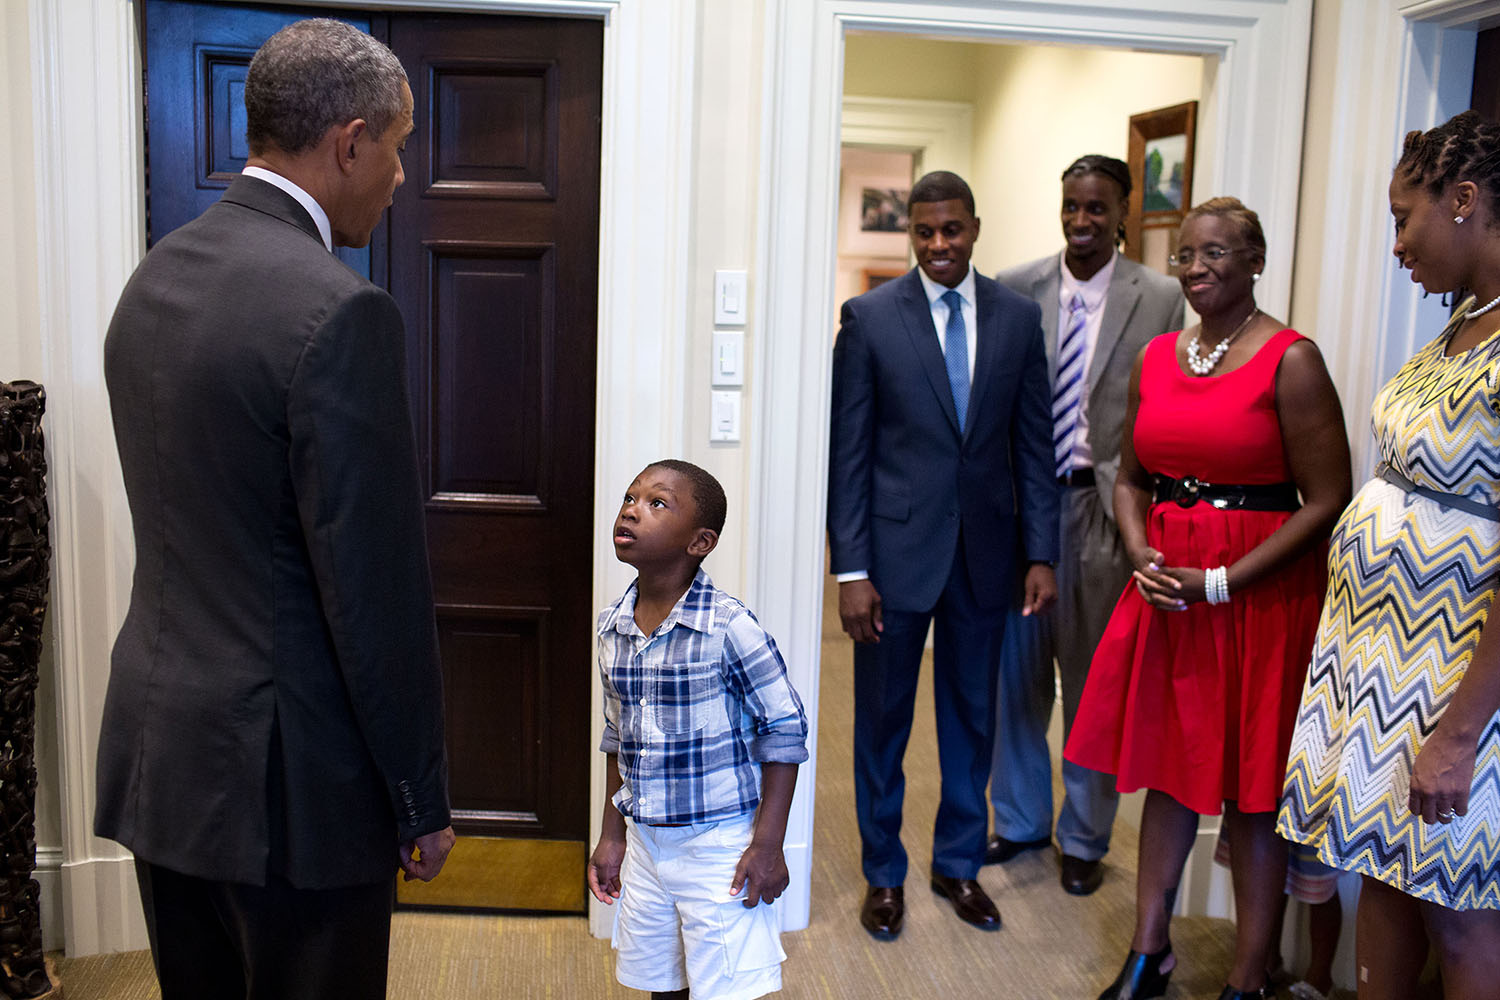 File:Four-year-old Malik Hall greets President Obama.jpg